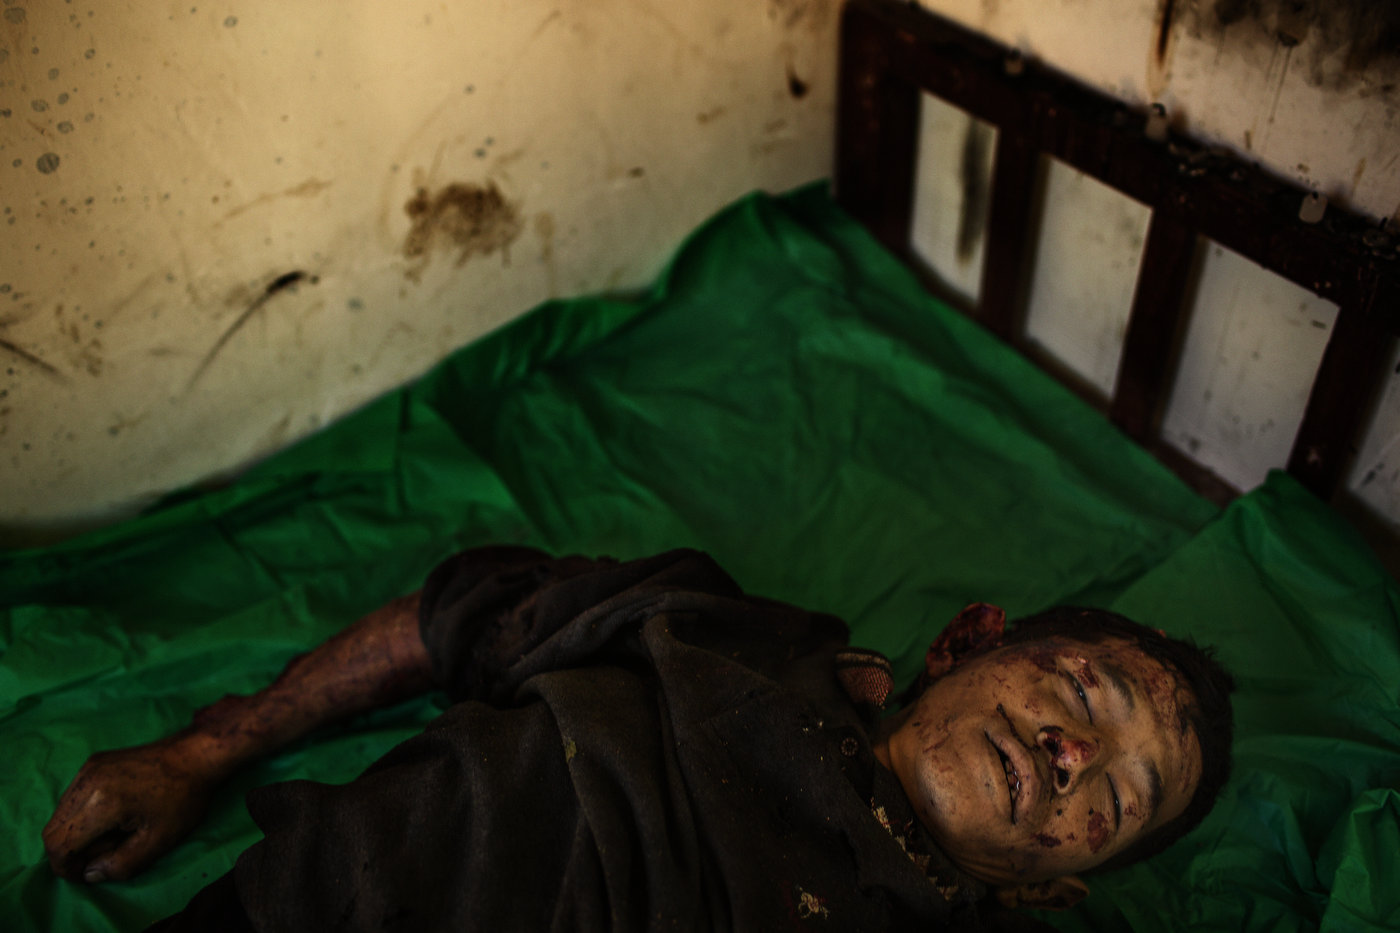 The body of deceased Maji Tu Ja, 40, lies in a mortuary in Laiza Hospital in Kachin State in northern Myanmar. Maji Tu Ja was killed by a Burmese Army mortar grenade whilst repairing his tractor in a field. Three other civilians were wounded in the same mortar attack - two of them seriously.